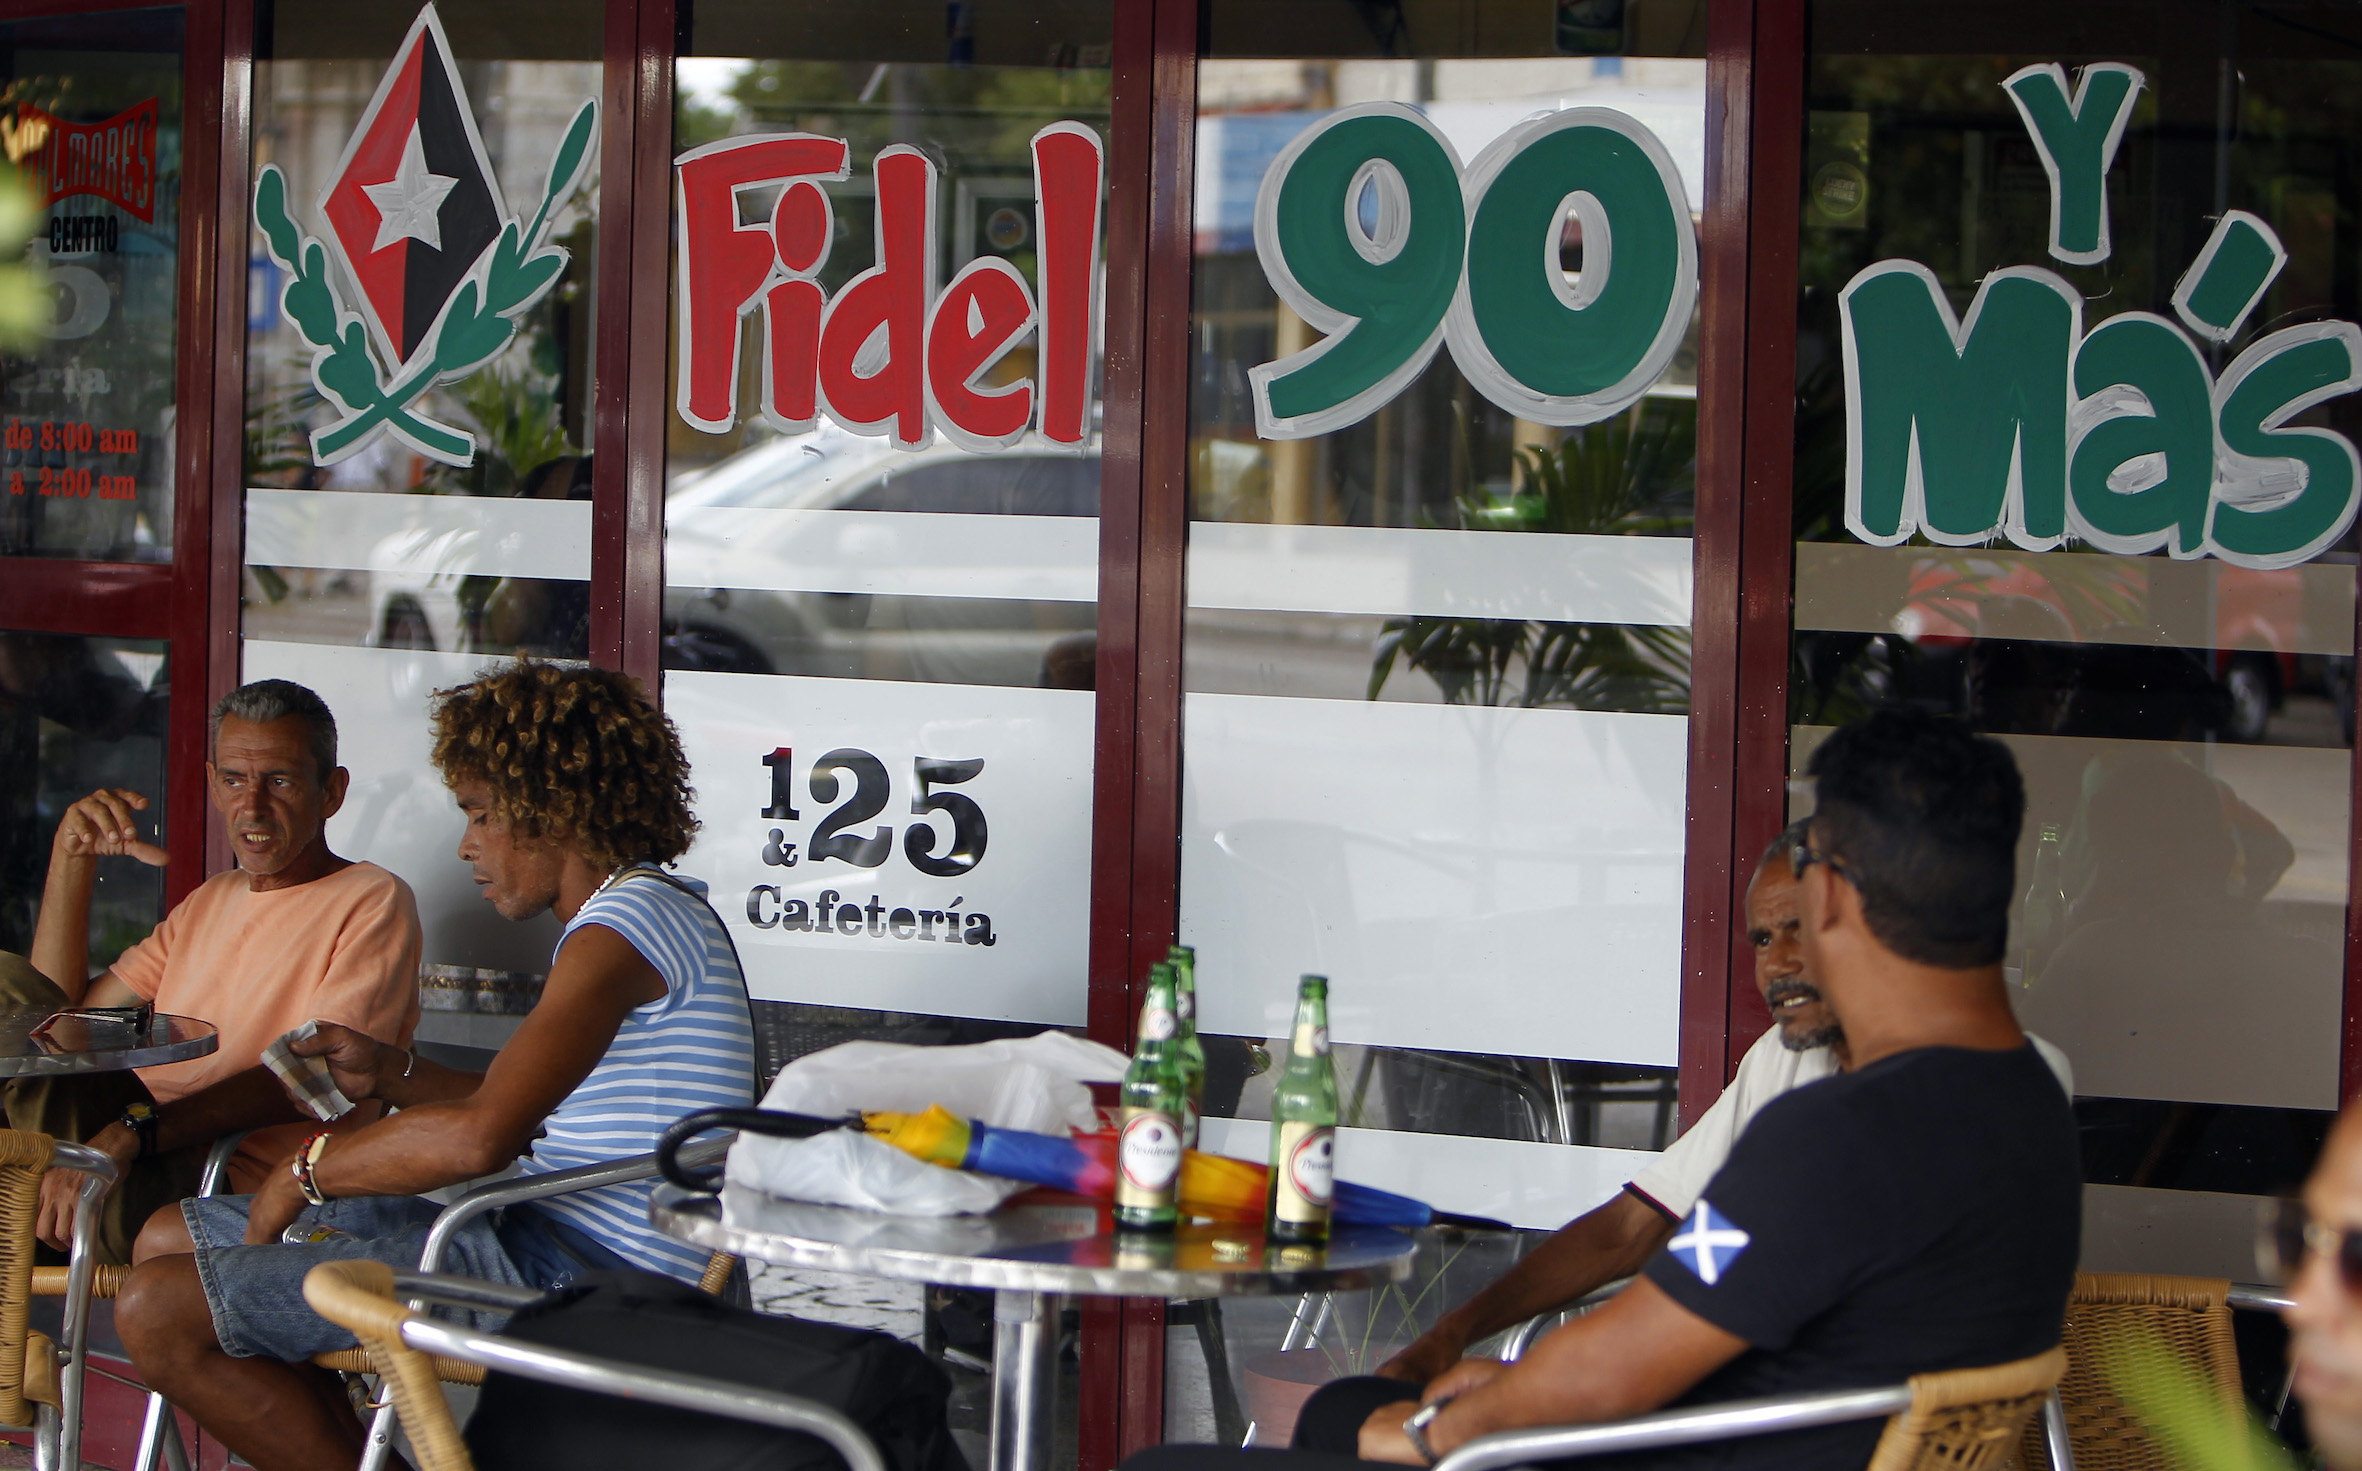 FIDEL TURNS 90. Several people drink beer in Havana, Cuba, August 9, 2016, next to a message marking the 90th birthday of Cuban Revolution leader Fidel Castro this August 13. Photo by Ernesto Mastrascusa/EPA